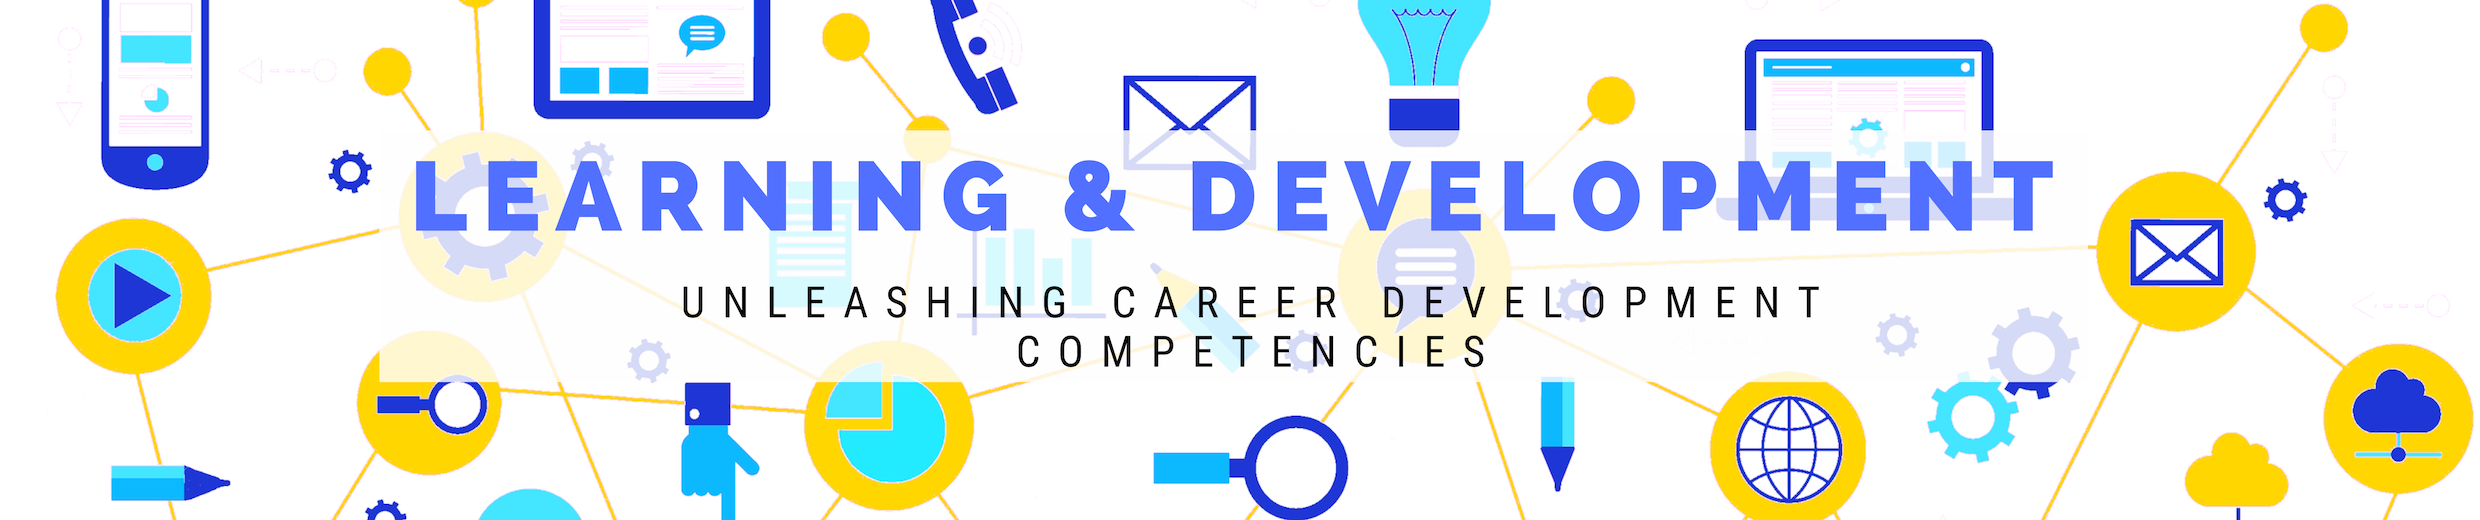 Top Banner (Learning & Development)